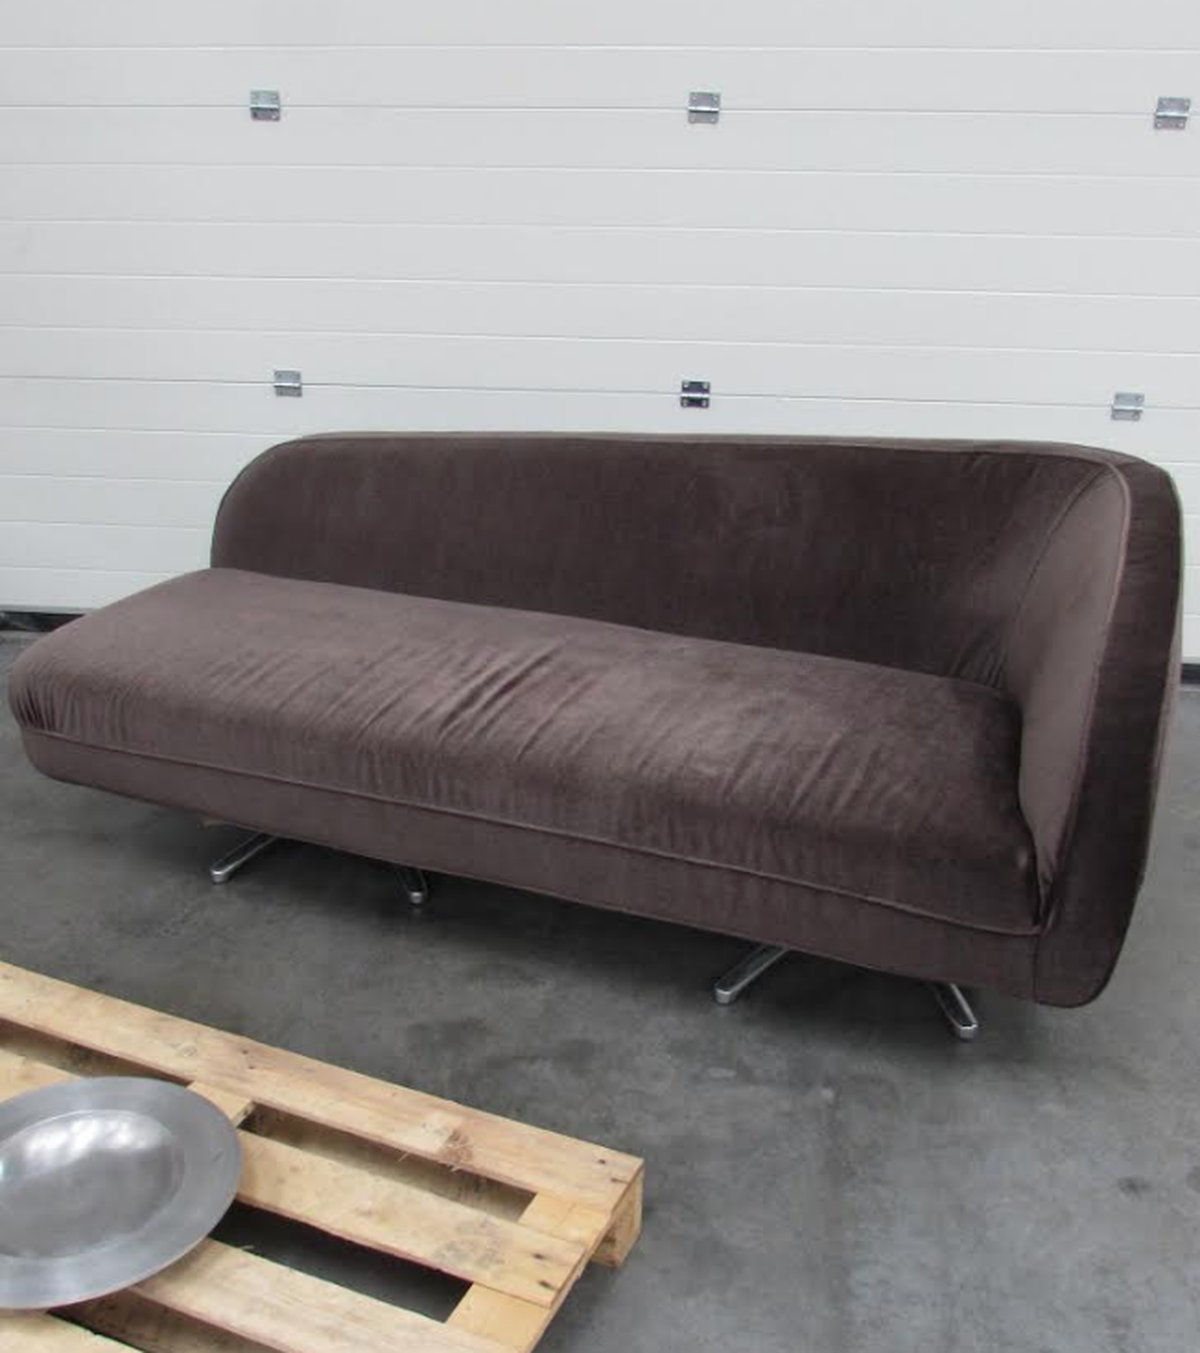 Secondhand pub equipment home furniture industrial for Chaise longue style sofa